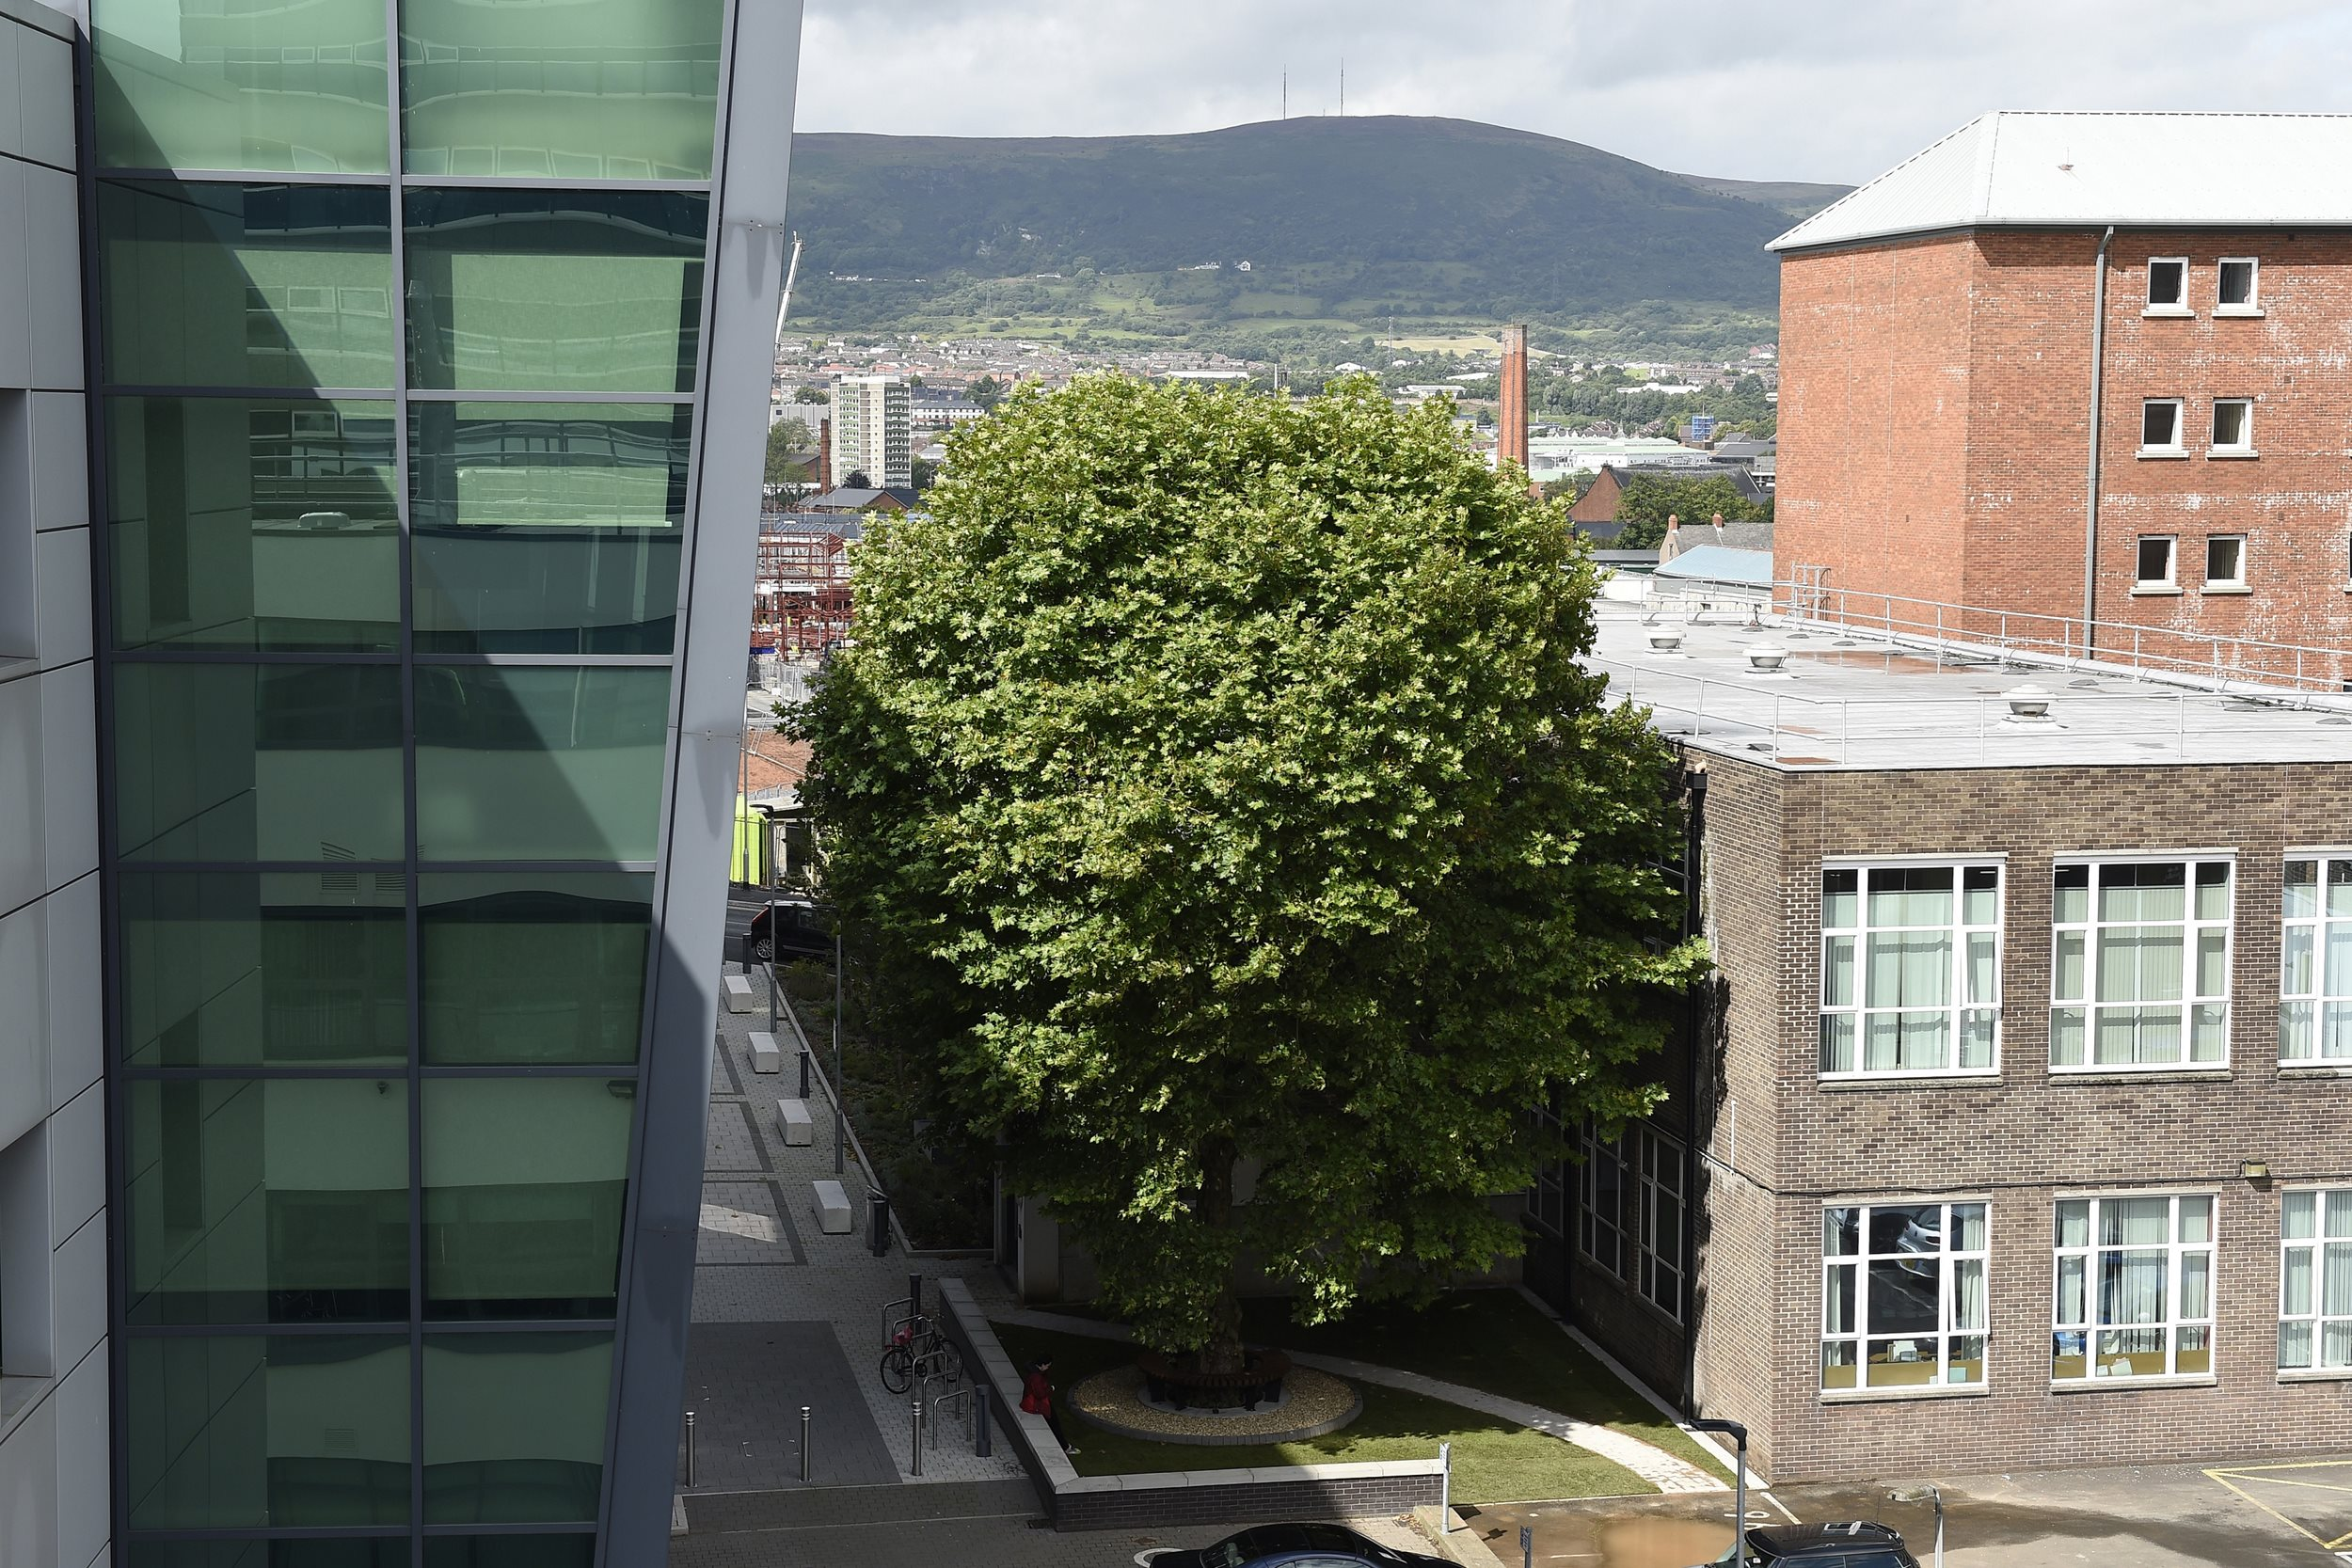 The Erskine House Tree, between Belfast City Hospital and Queen's University Belfast, was crowned Tree of the Year 2017.